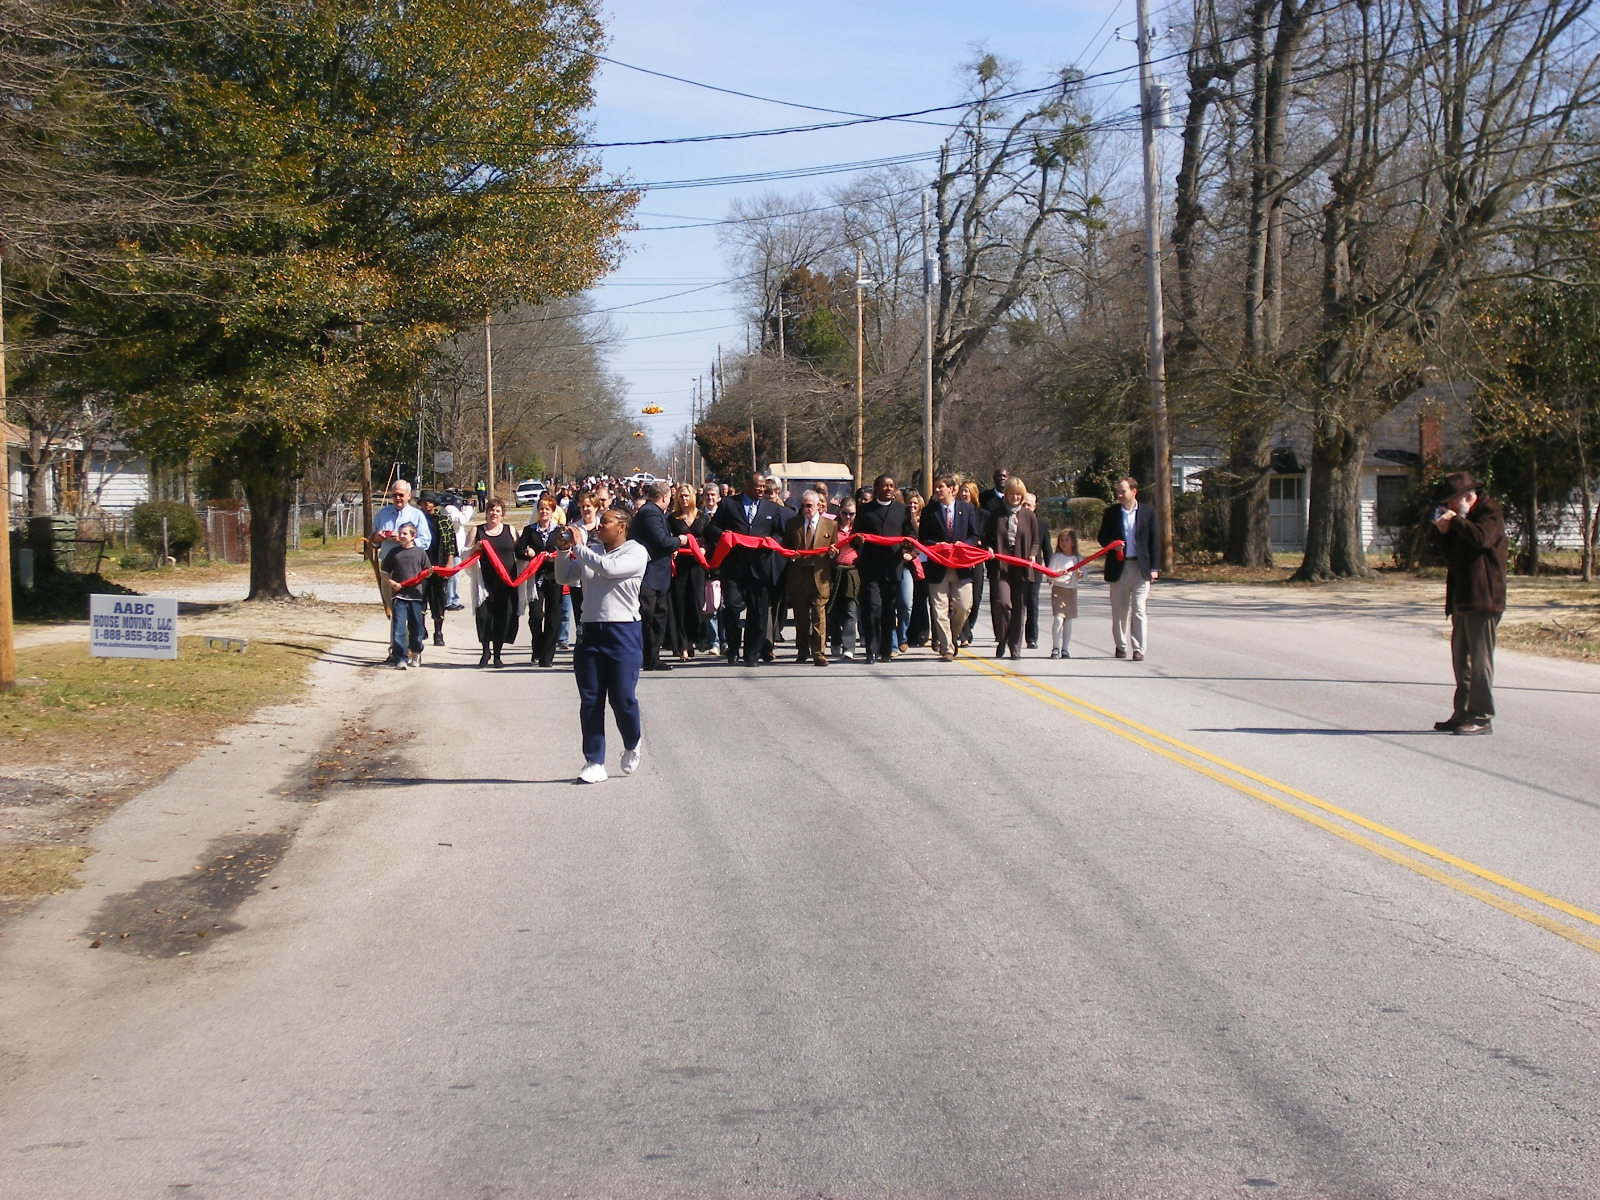 Approximately 300 people marched to the ribbon-cutting ceremony.